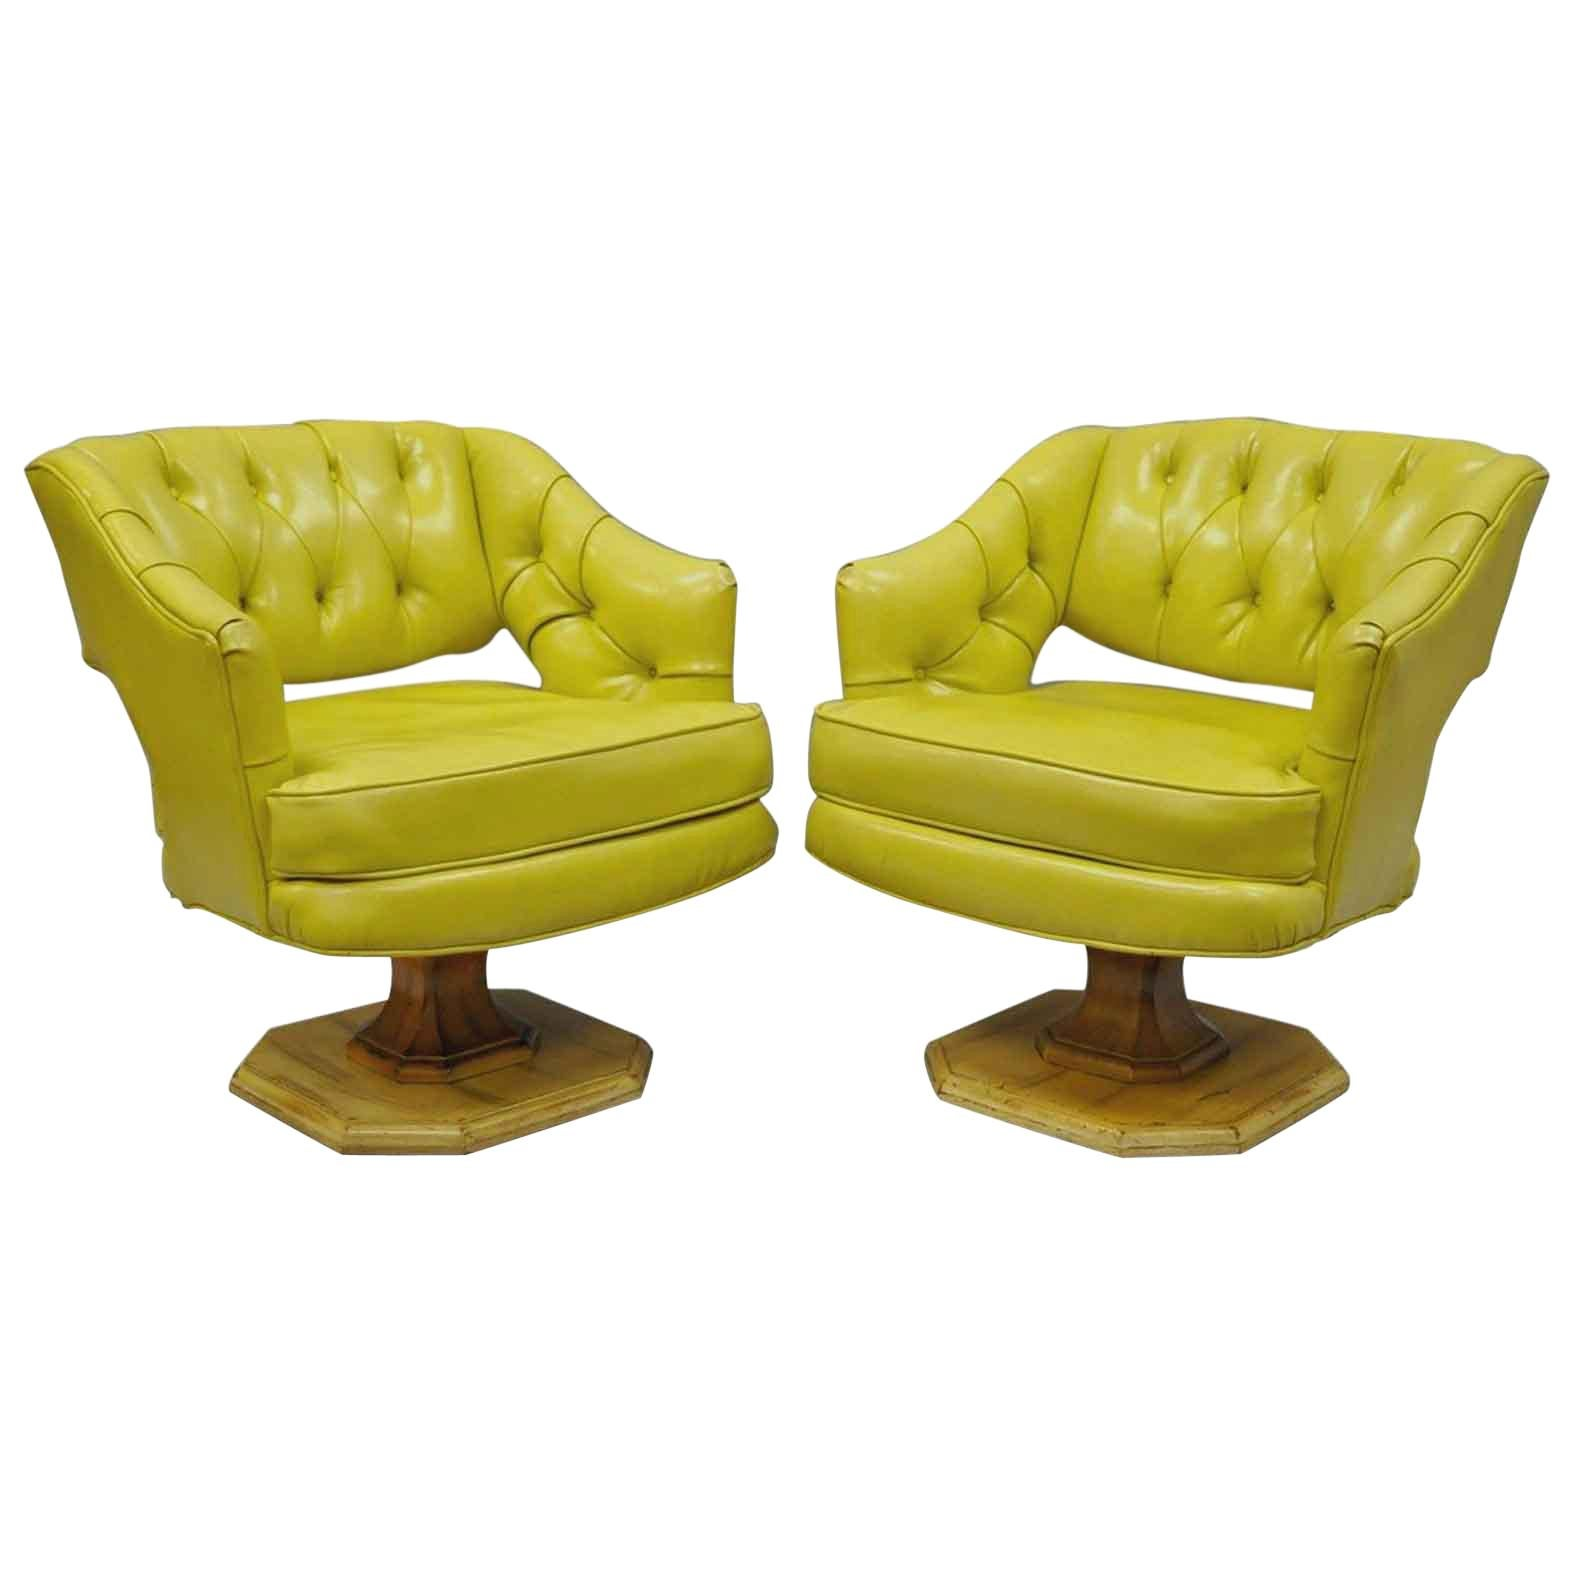 Delicieux Pair Of Silver Craft Green Yellow Swivel Club Lounge Chairs Mid Century  Modern A